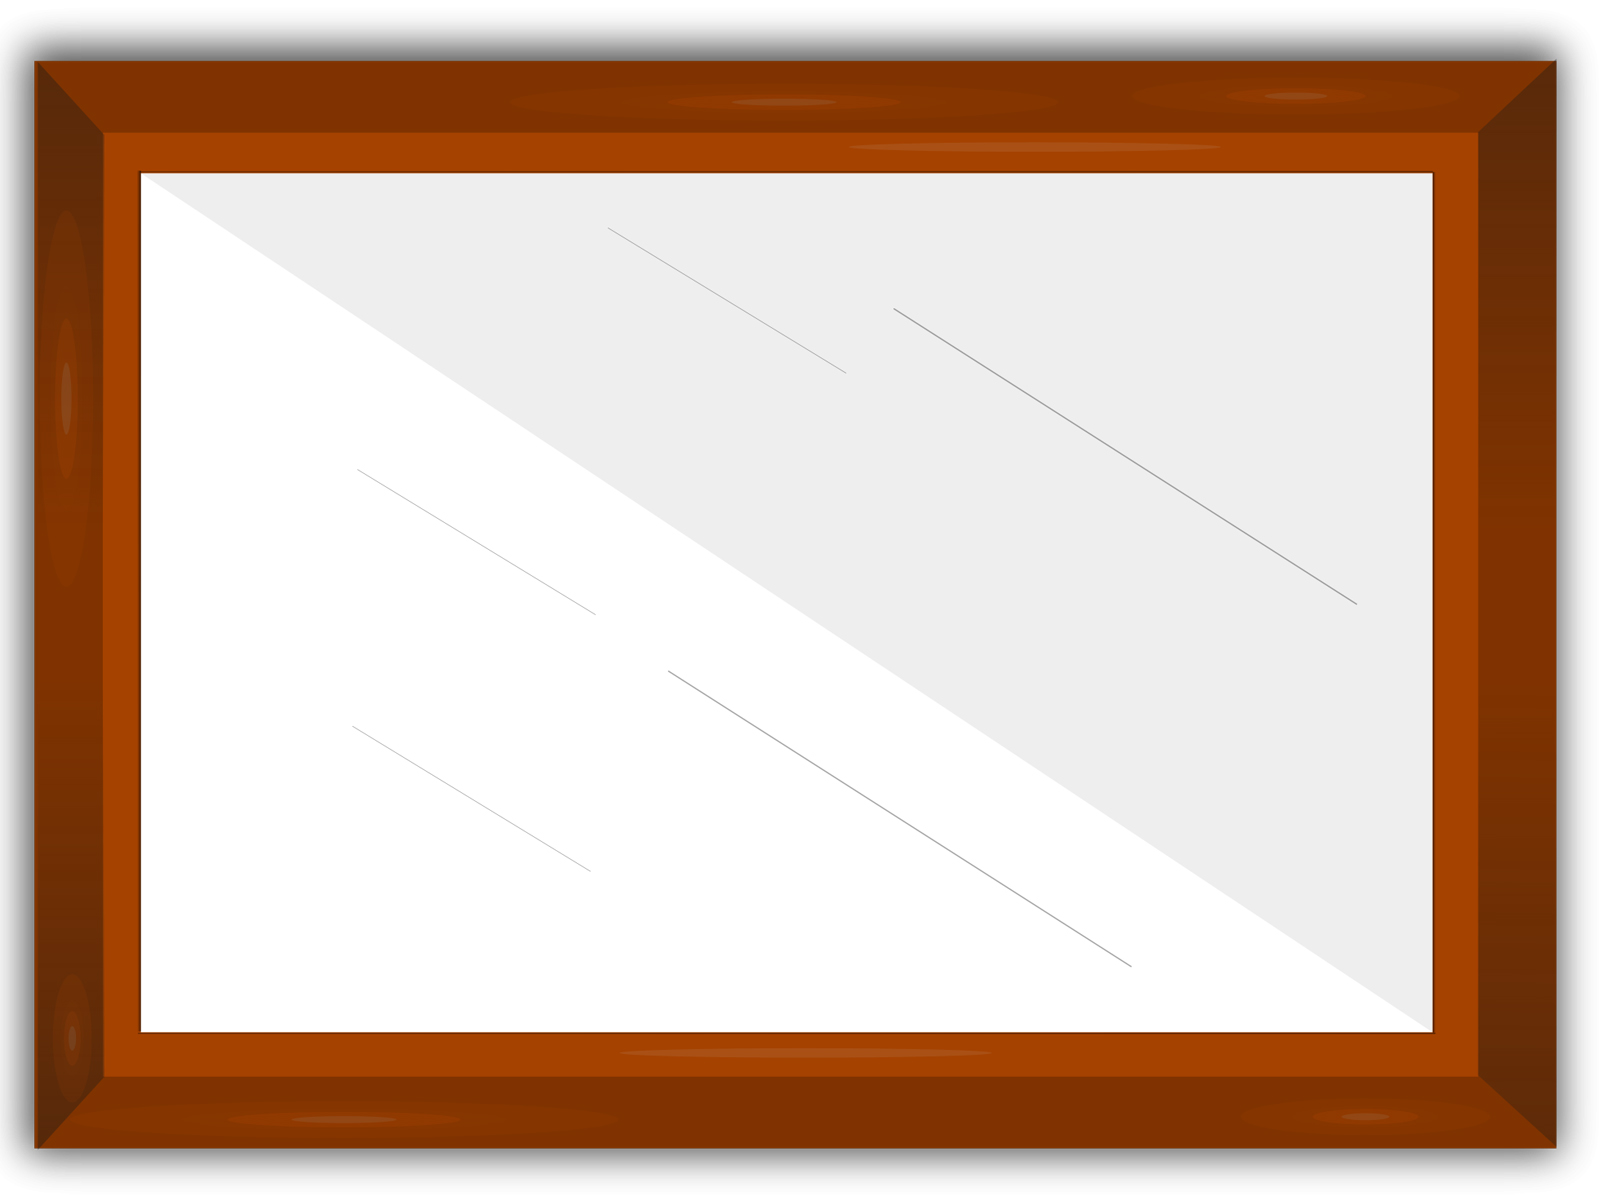 Cool Frame Table Frame Powerpoint Design Ppt Backgrounds Templates